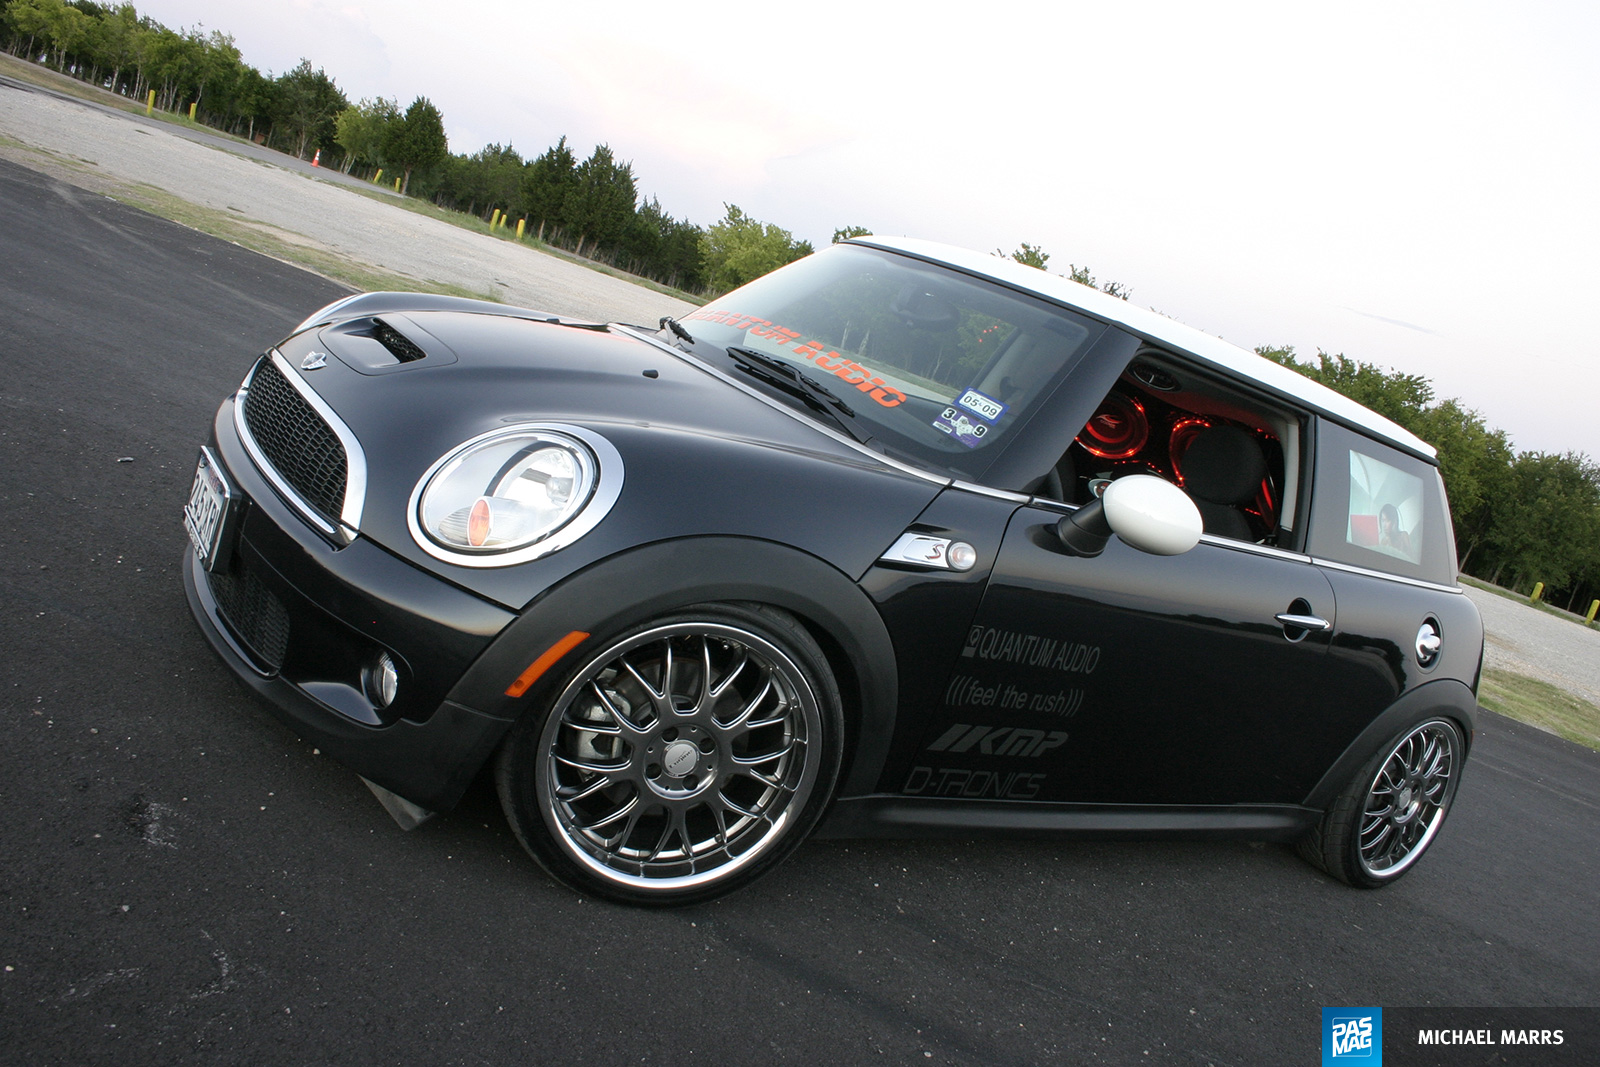 29 Quantum Audio Mini Cooper S pasmag